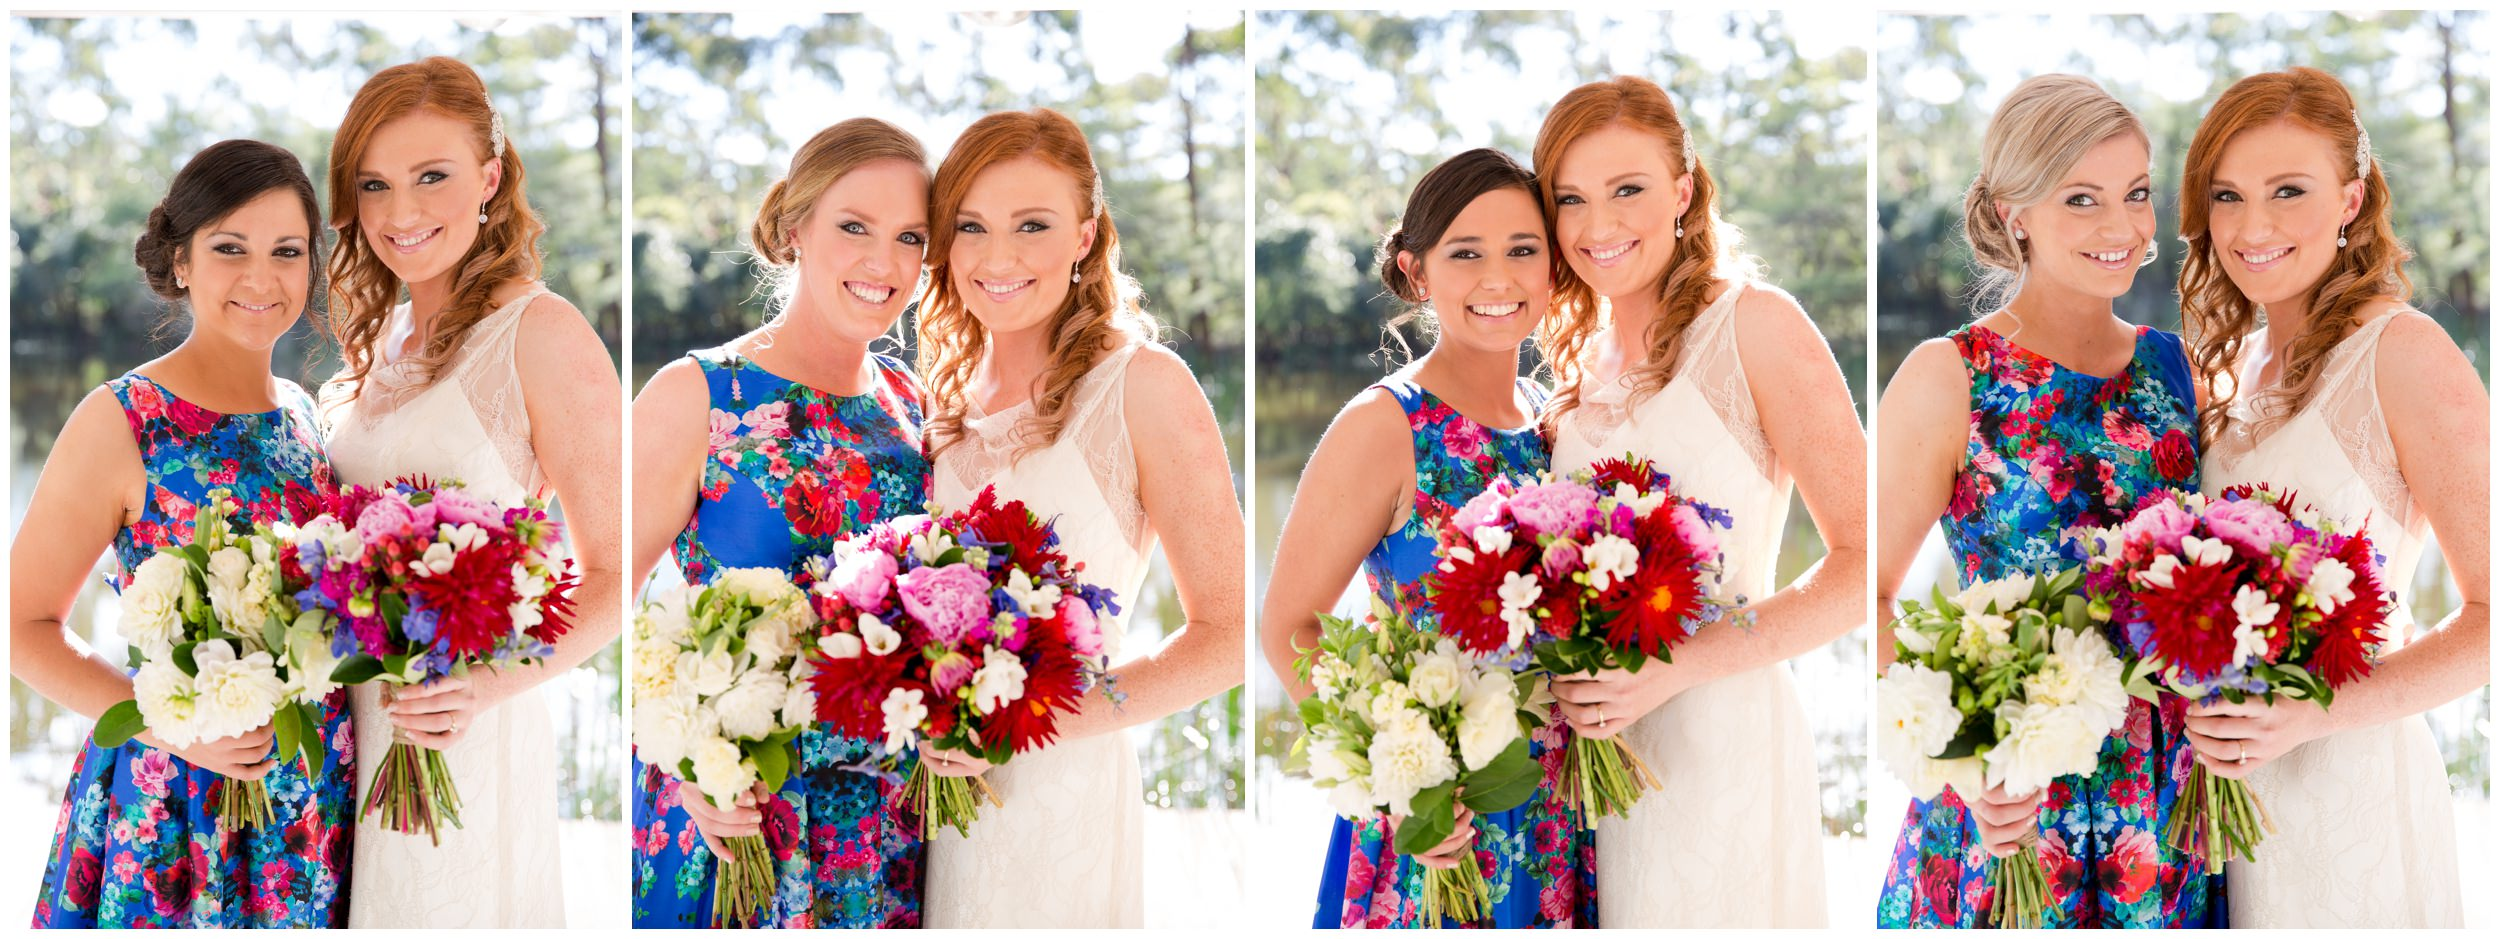 Dubbo Wedding Photographer Blue Mountains Wedding_0112.jpg